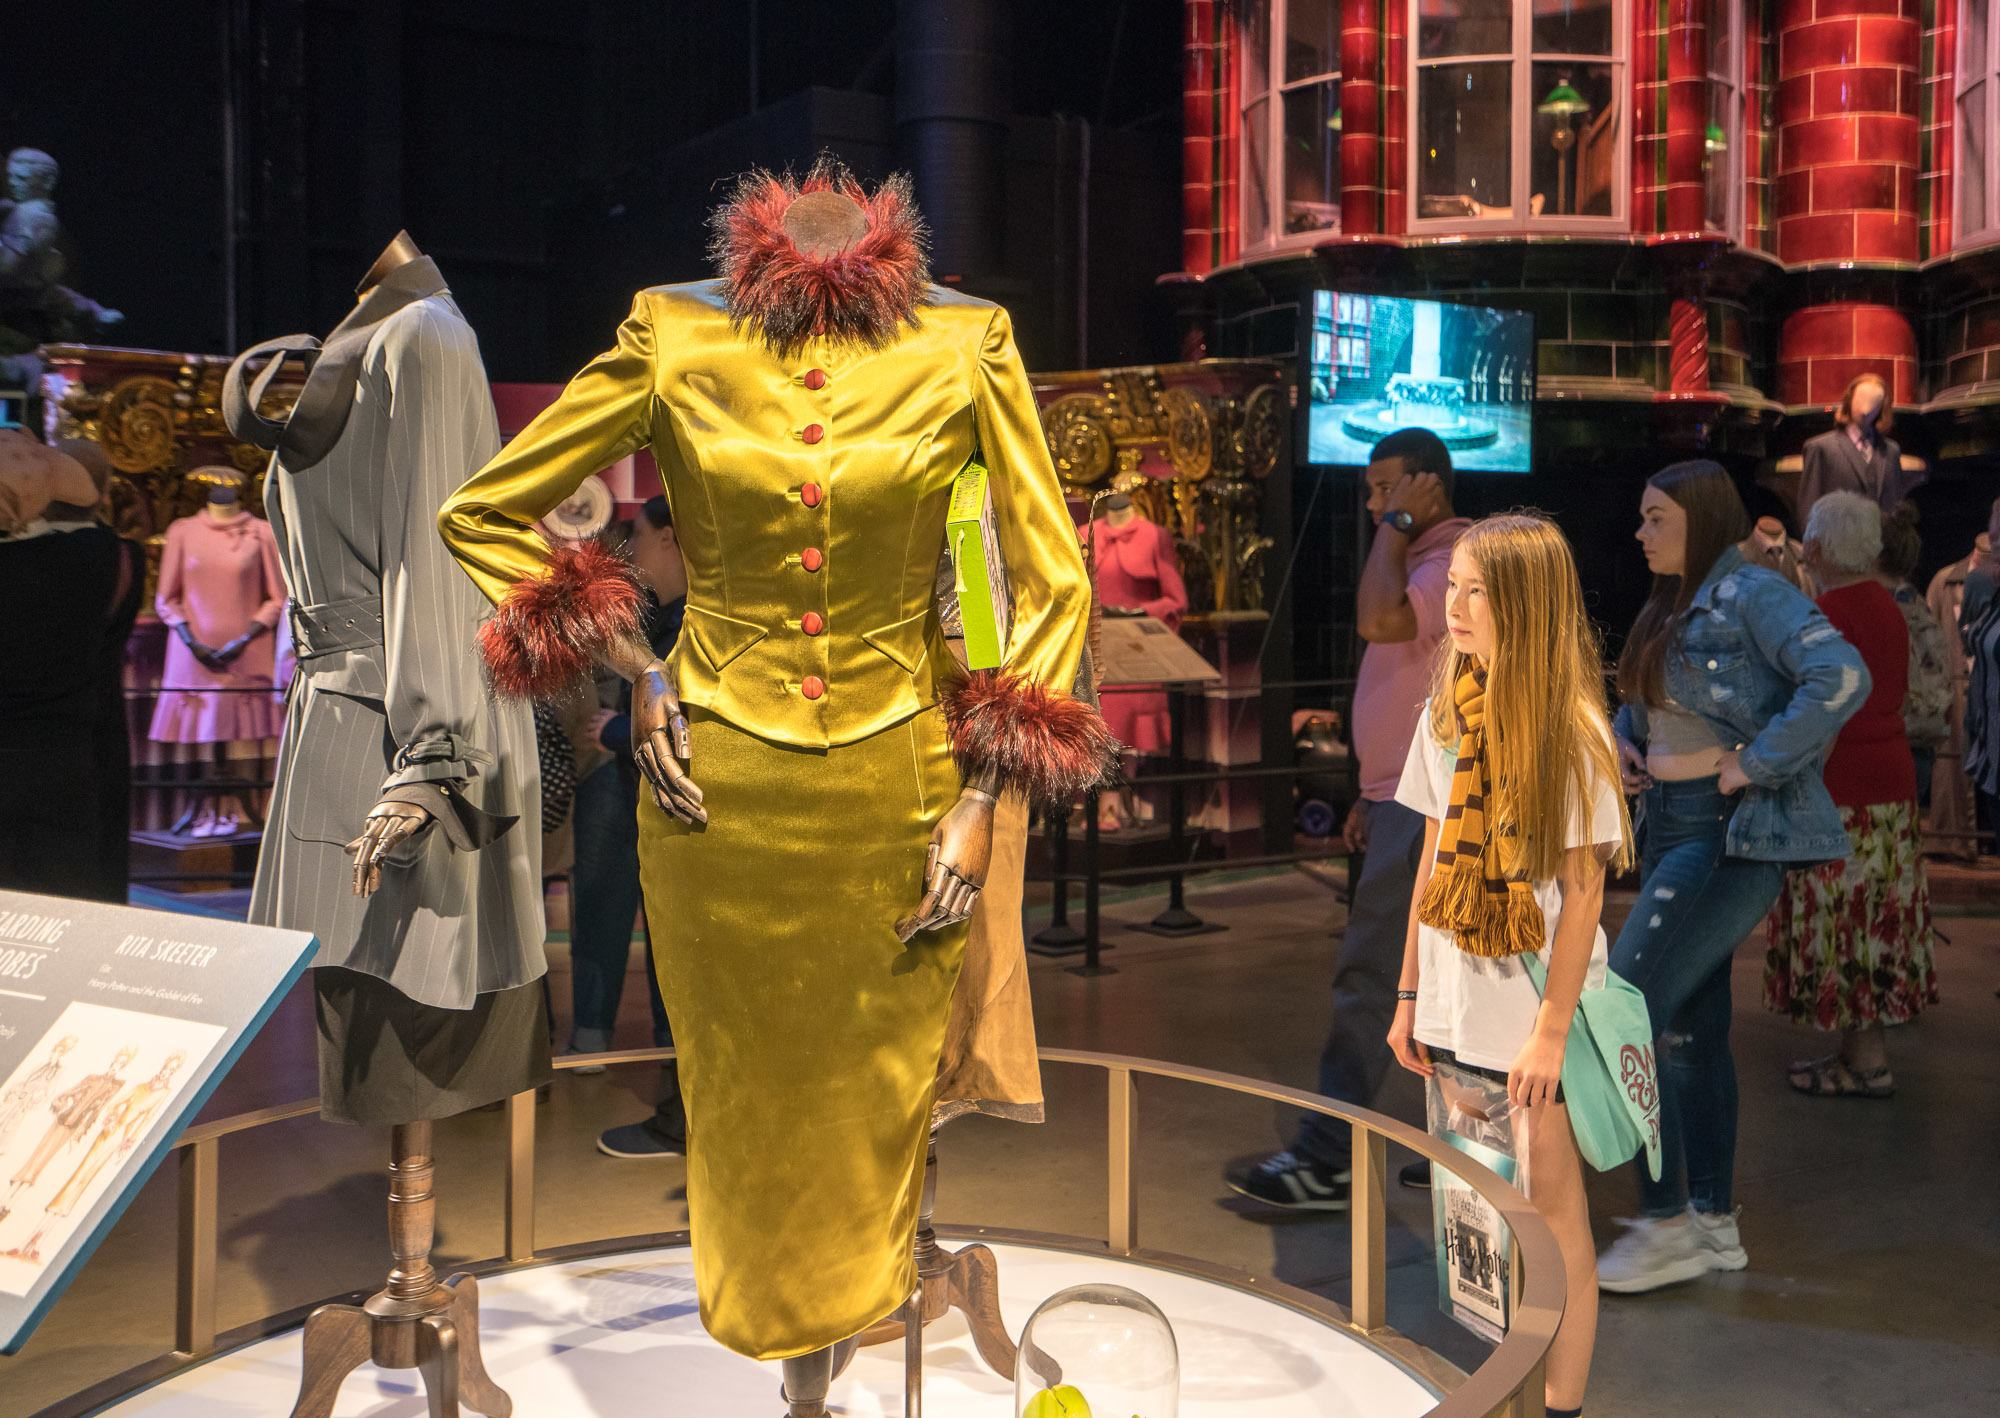 Rita Skeeter's elaborate costumes at Warner Bros. Studio Tour London.